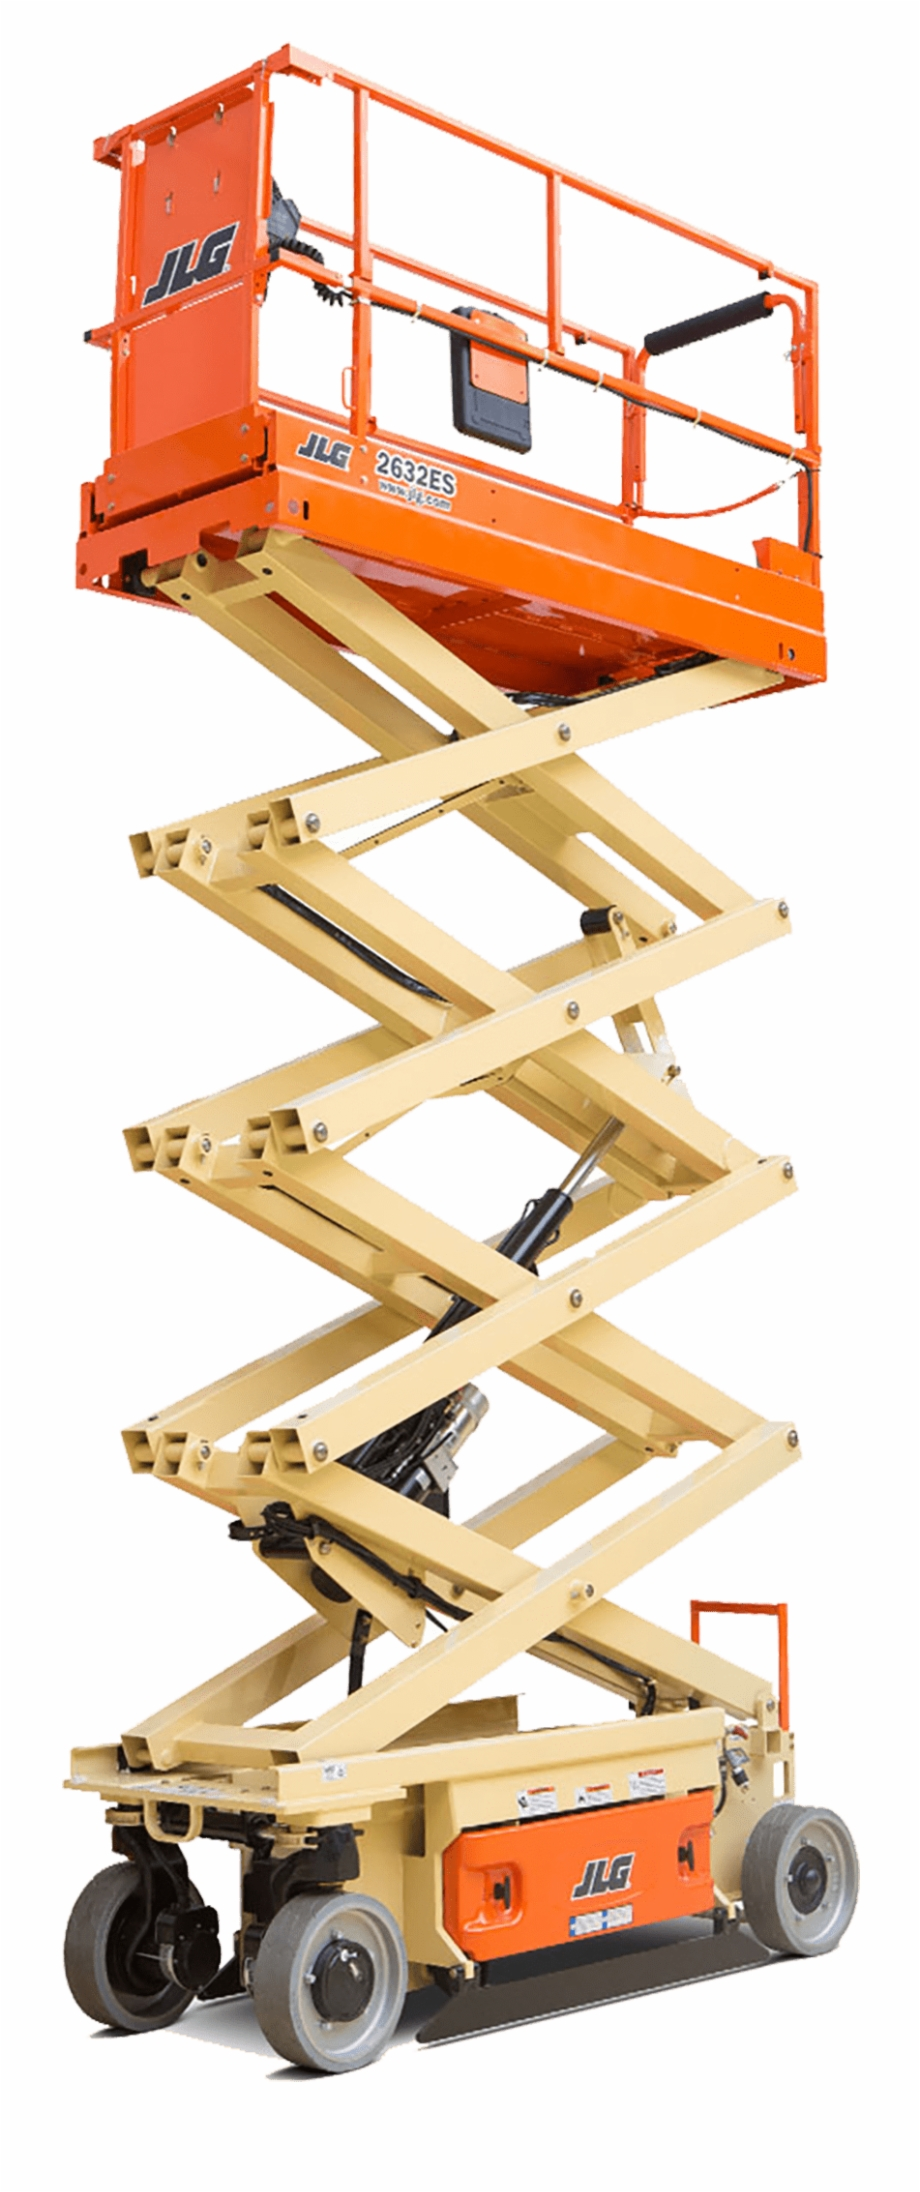 Stevenson Jlg 2632es Electric Scissor Lift Height 25\'6.